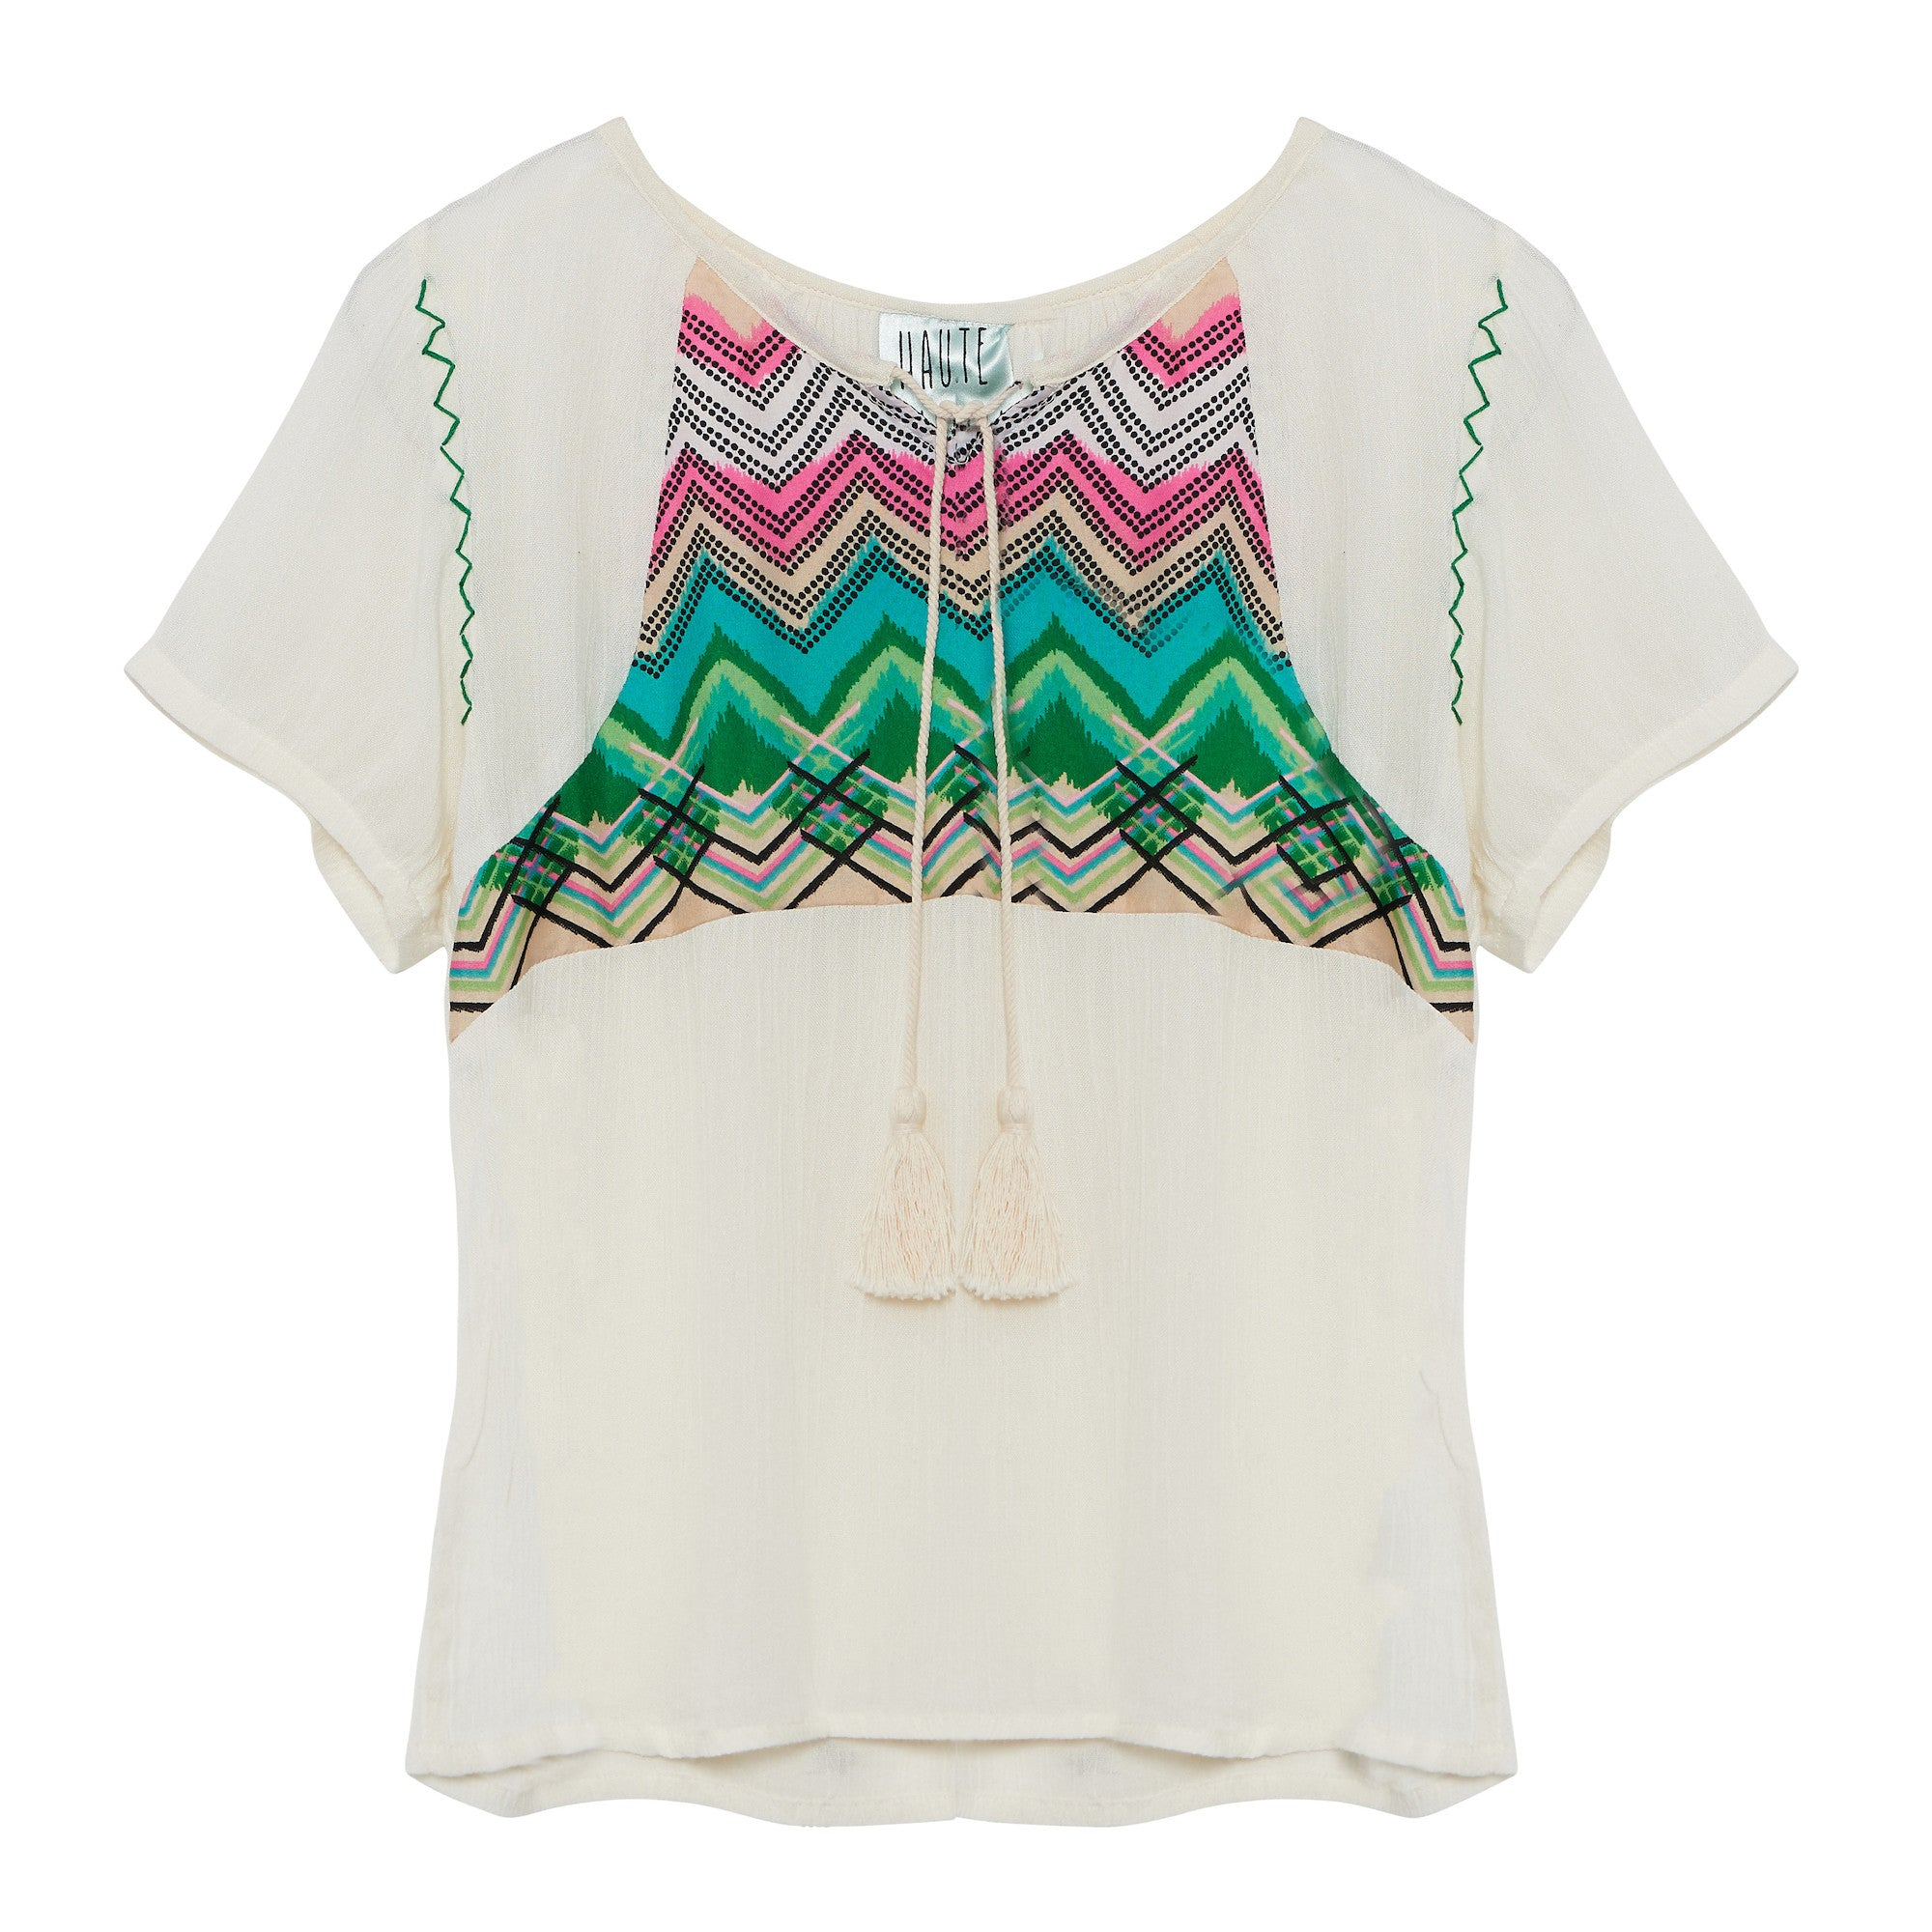 Haute hits, peasant tee, embroidered, boho style